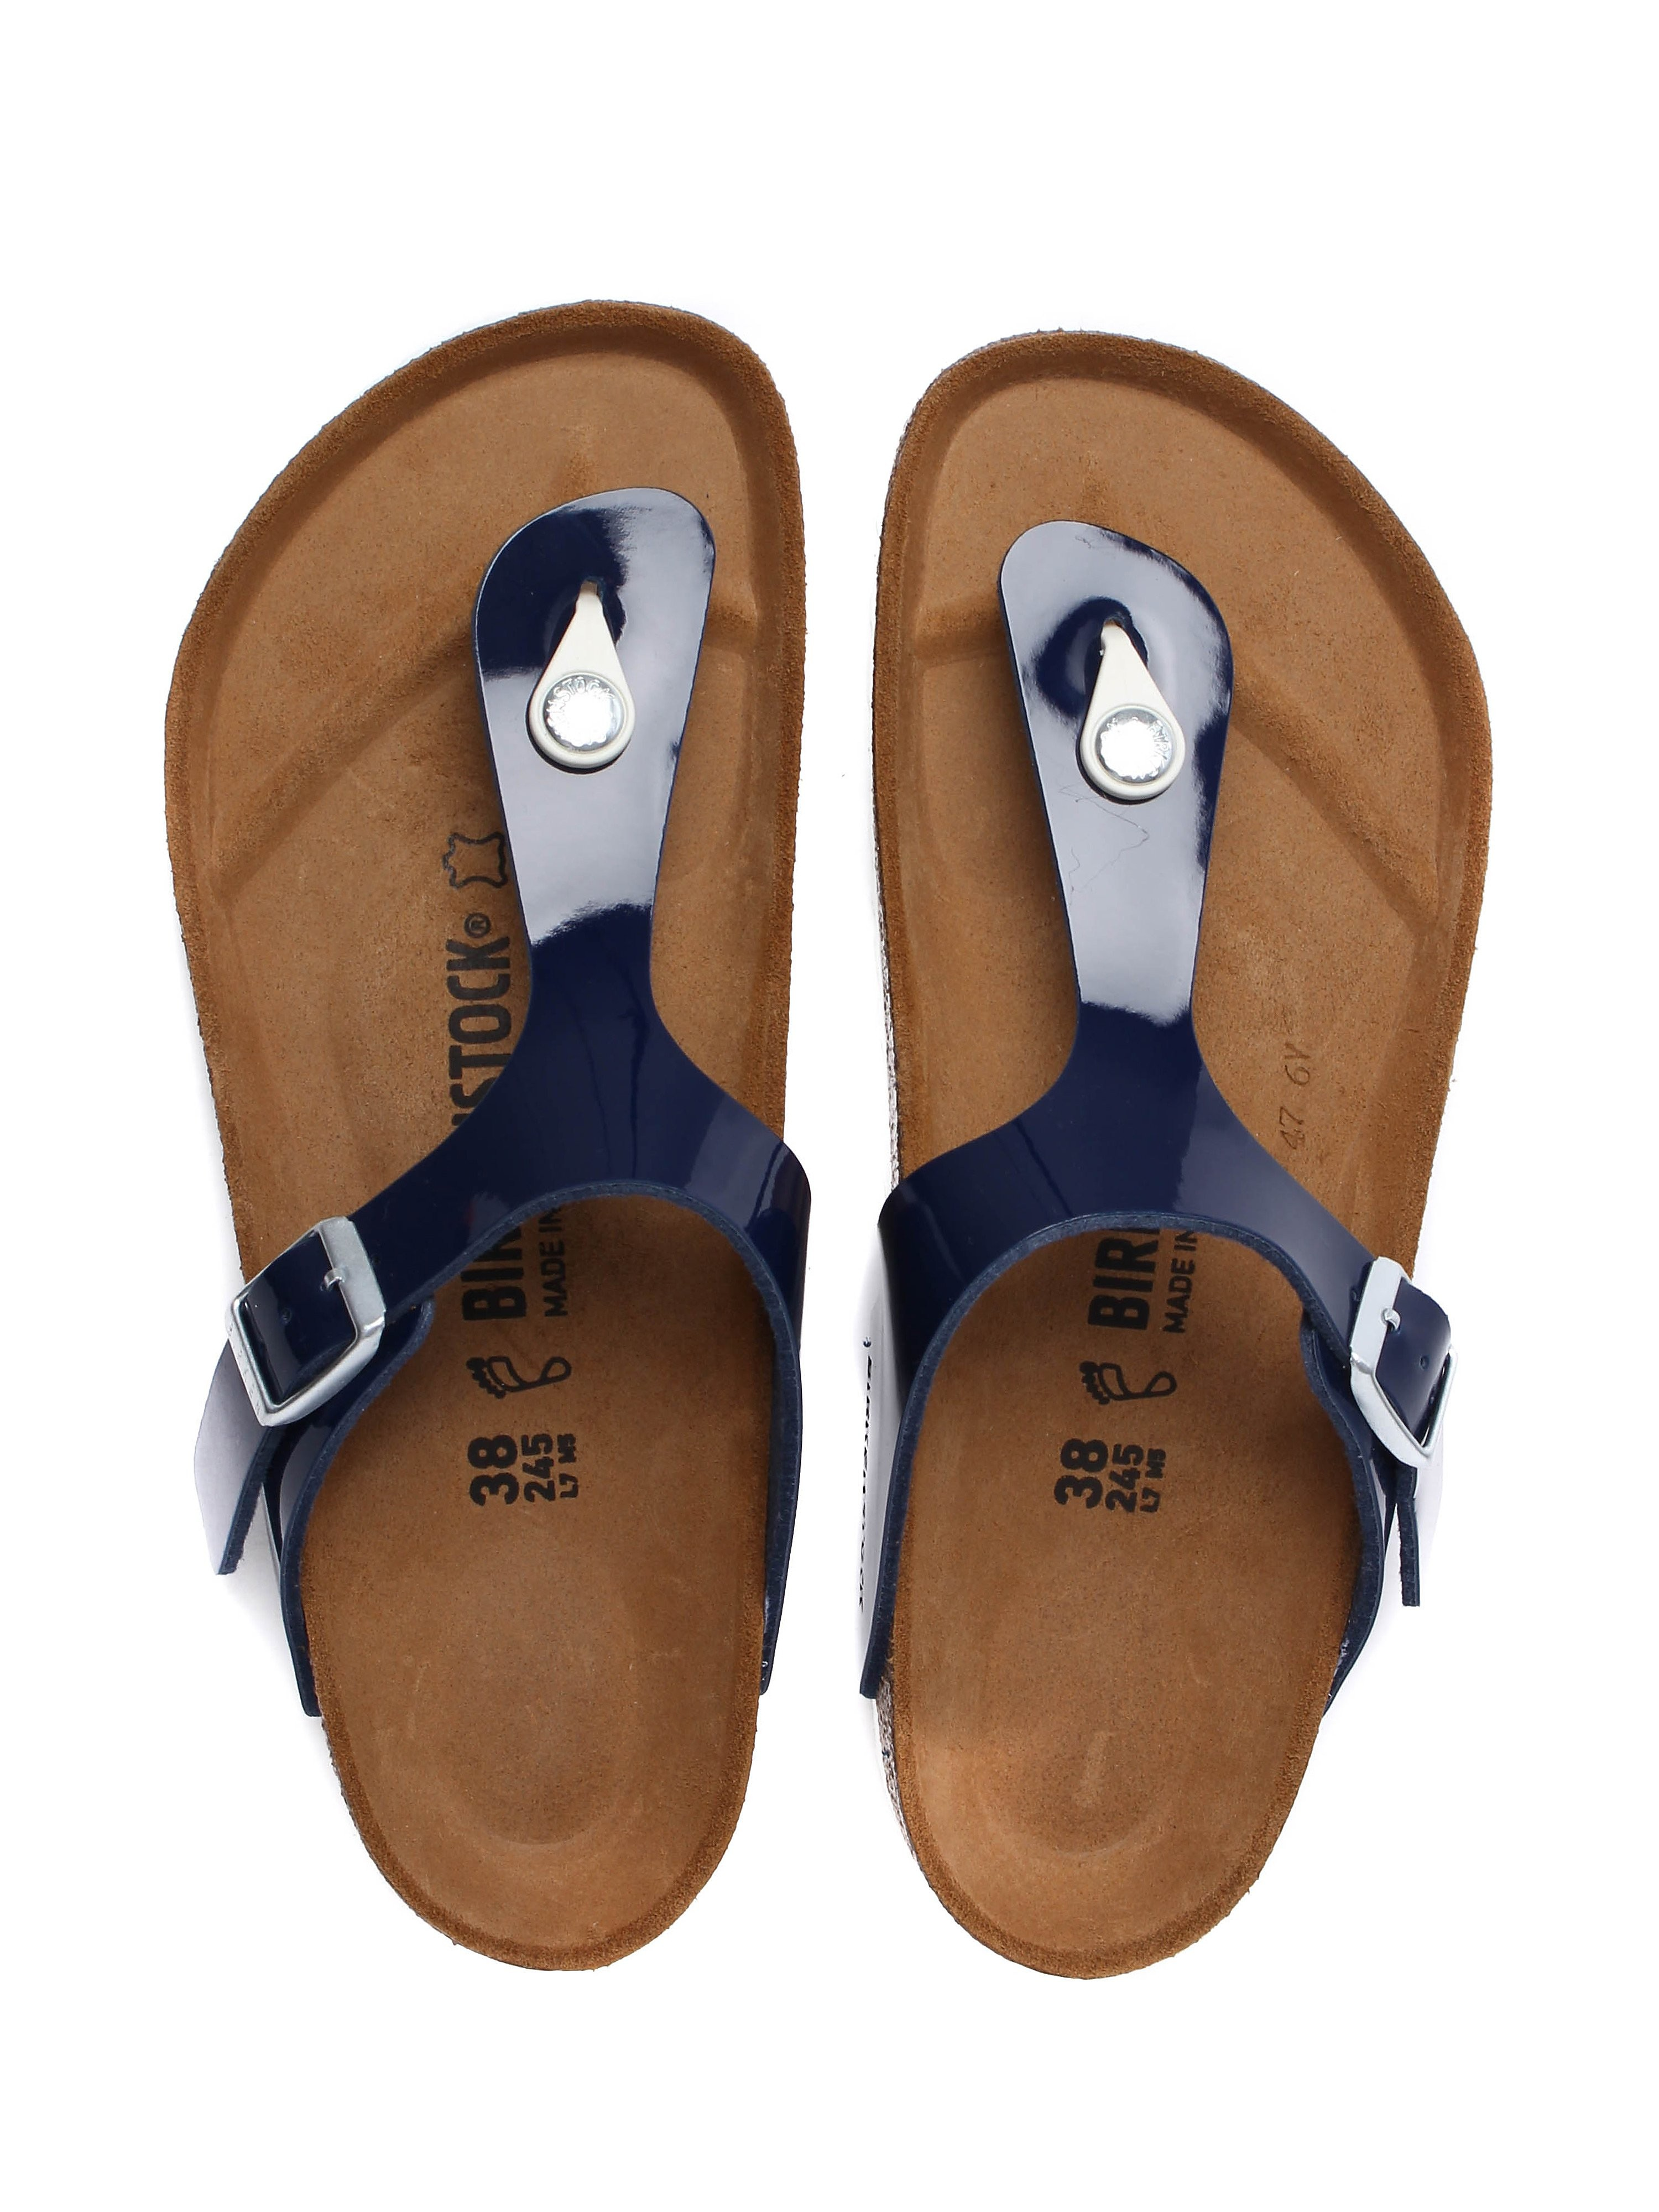 Birkenstock Women's Gizeh Regular Fit Sandals - Navy Patent